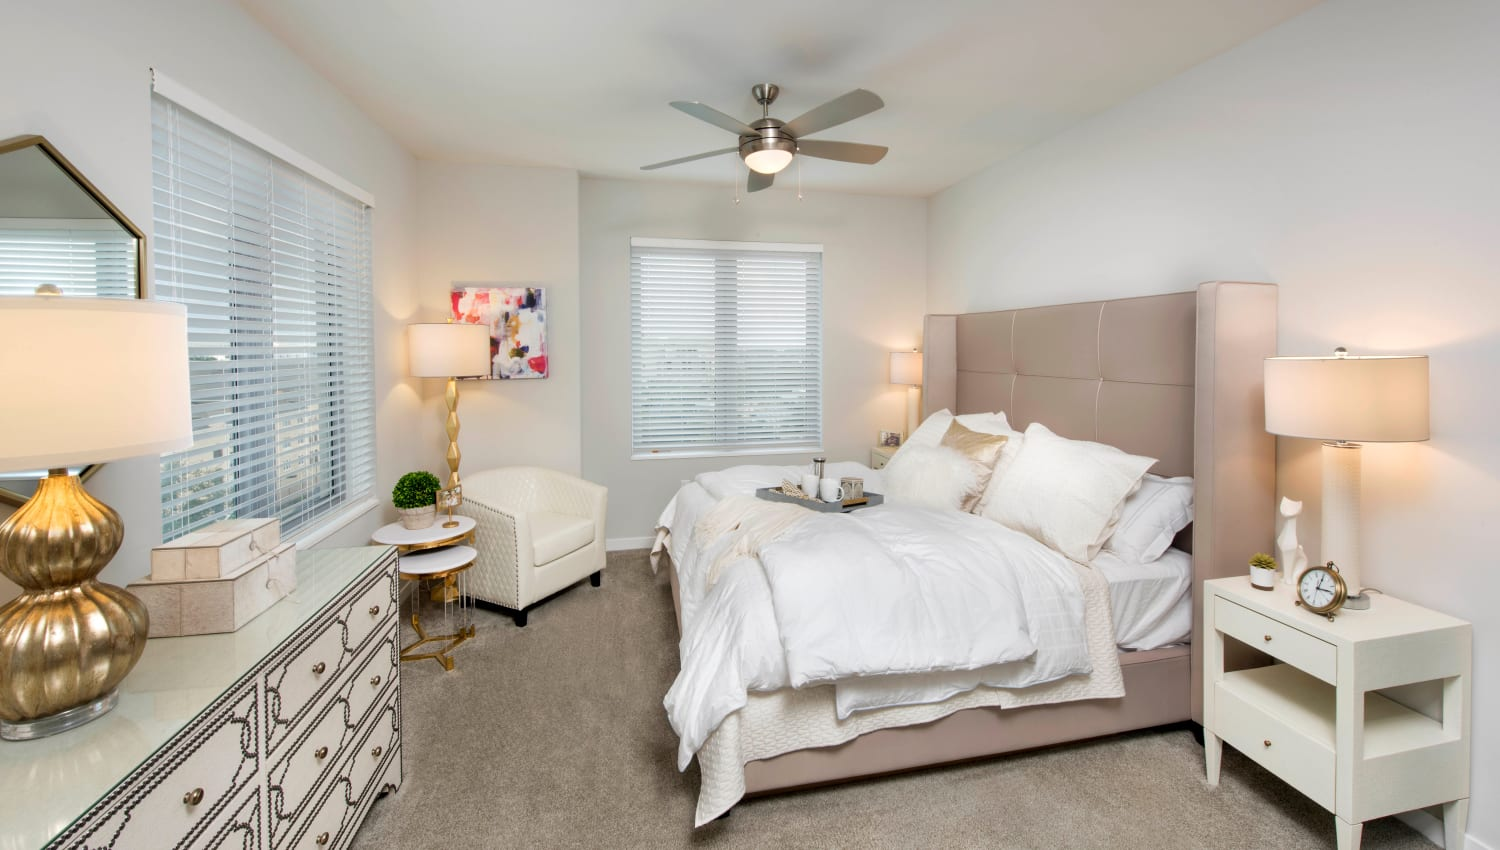 Ceiling fan and plush carpeting in a model home's bedroom at Olympus Harbour Island in Tampa, Florida